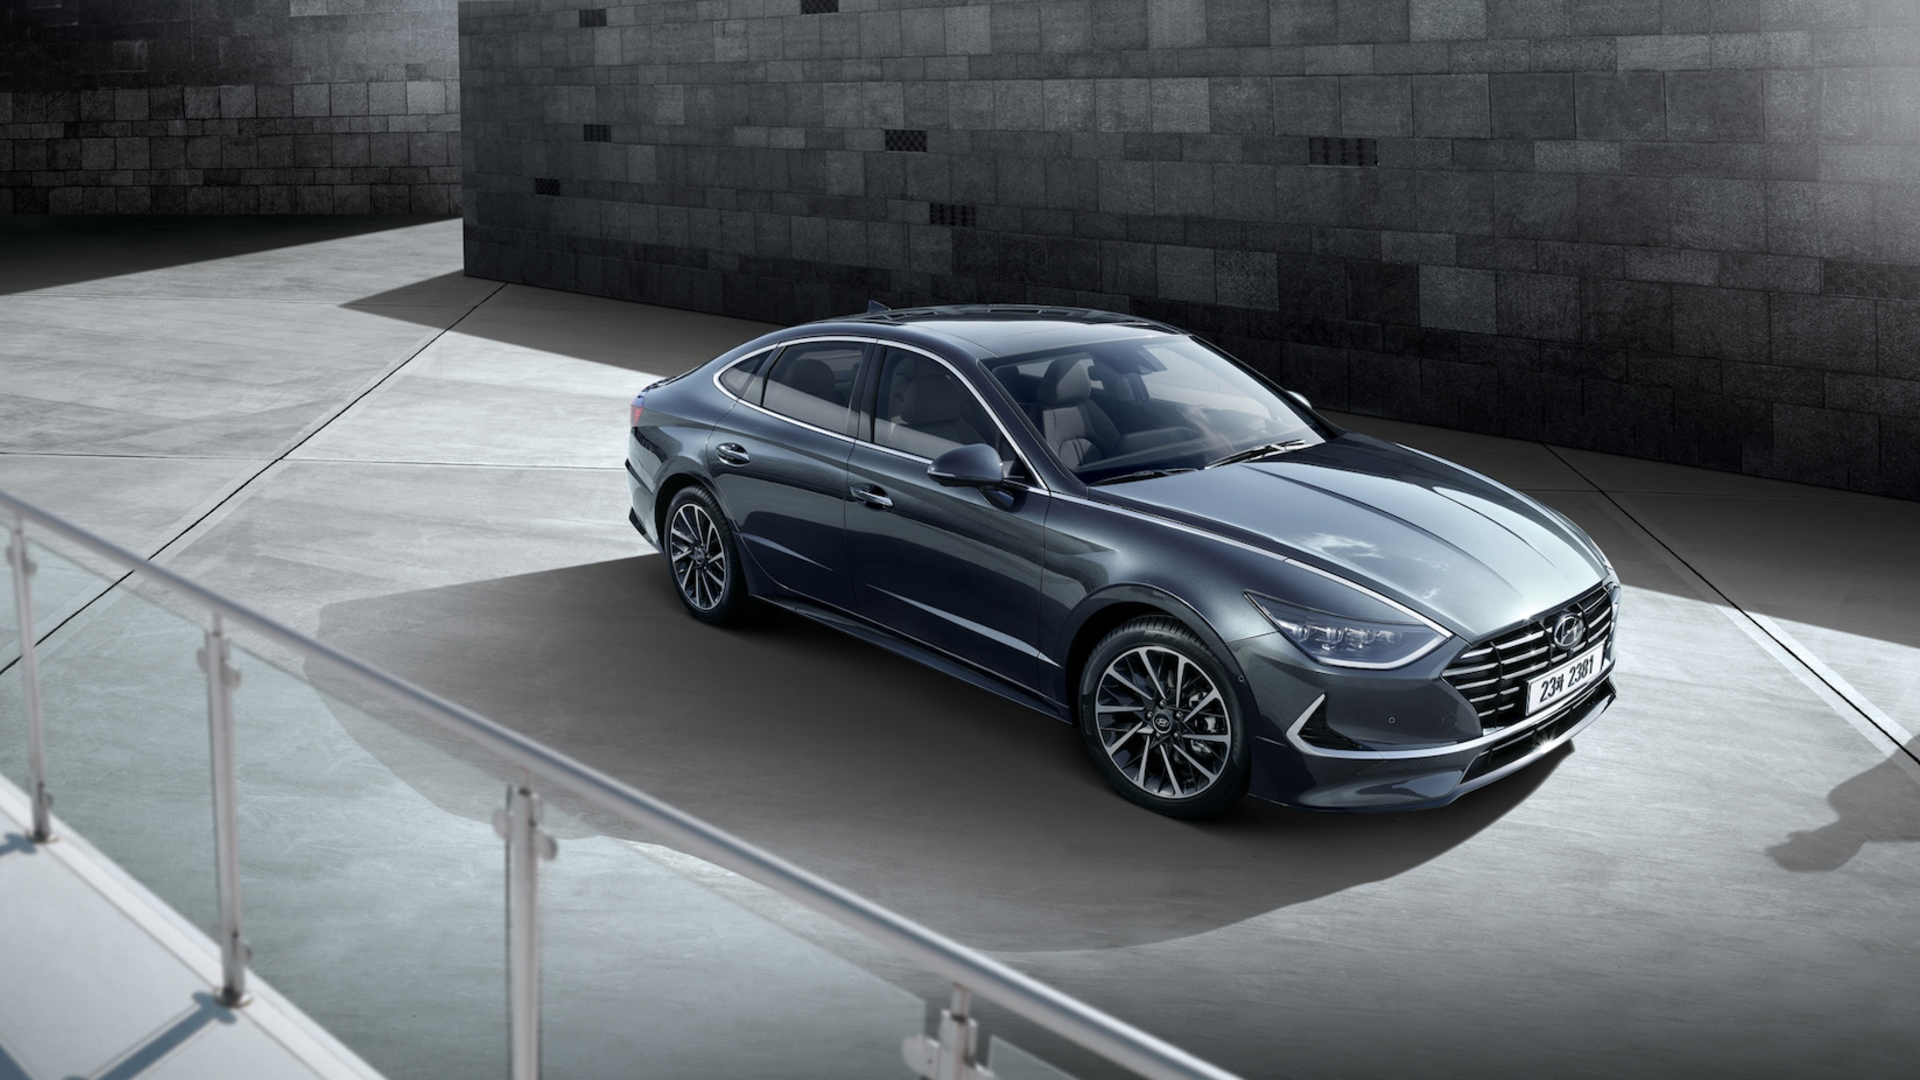 16 All New 2020 Hyundai Sonata Hybrid Sport Release Date and Concept